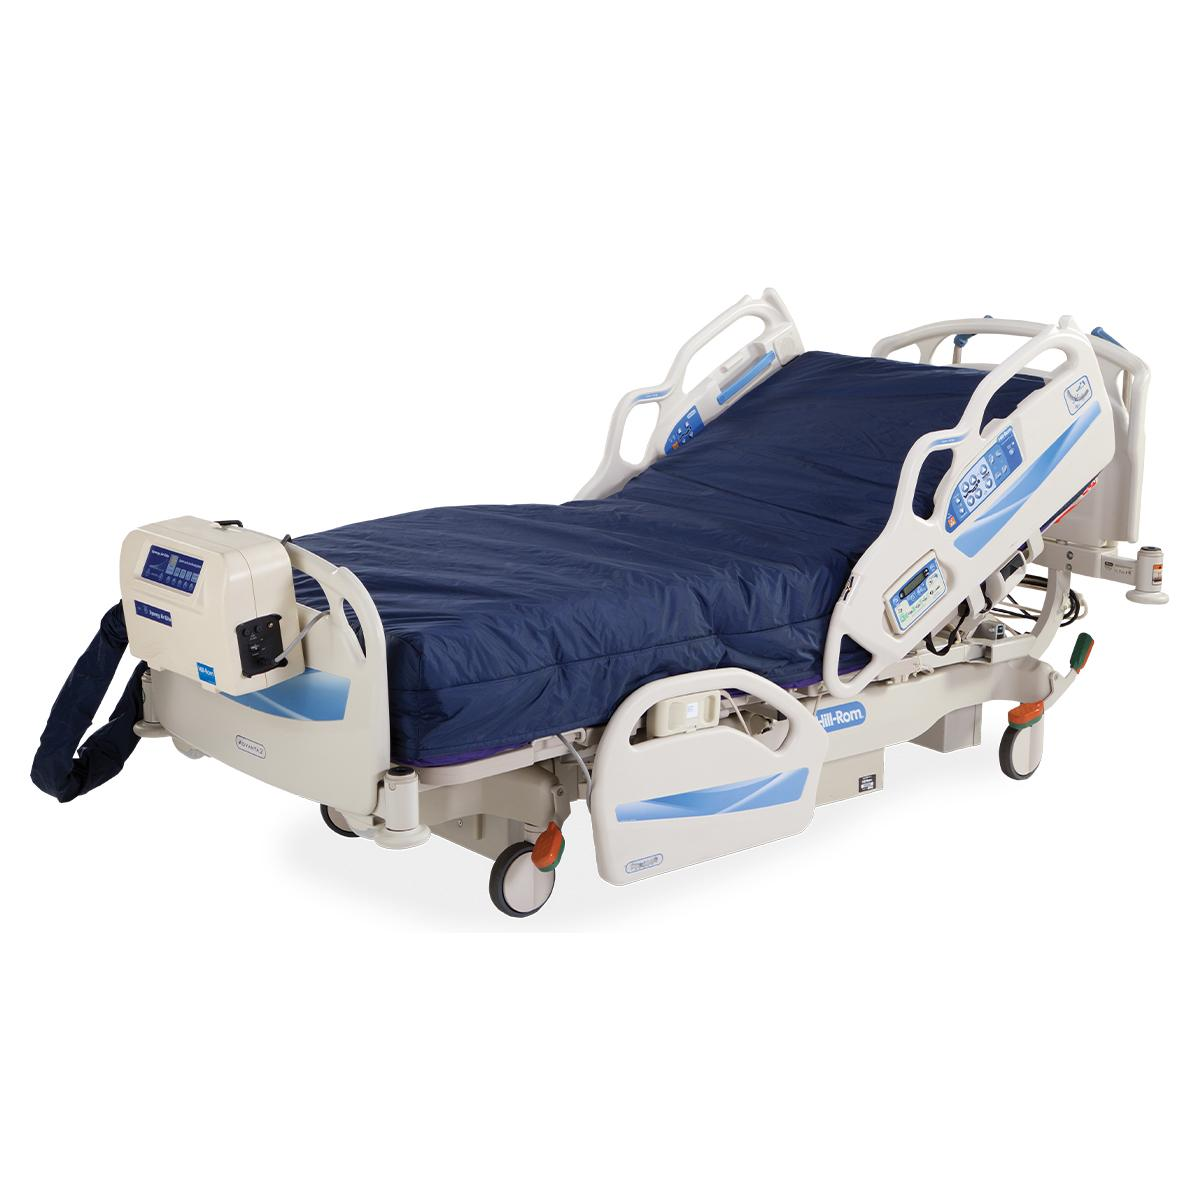 Advanta 2 Med Surg Bed, 3/4 view, right side, shown with Synergy Air Elite surface